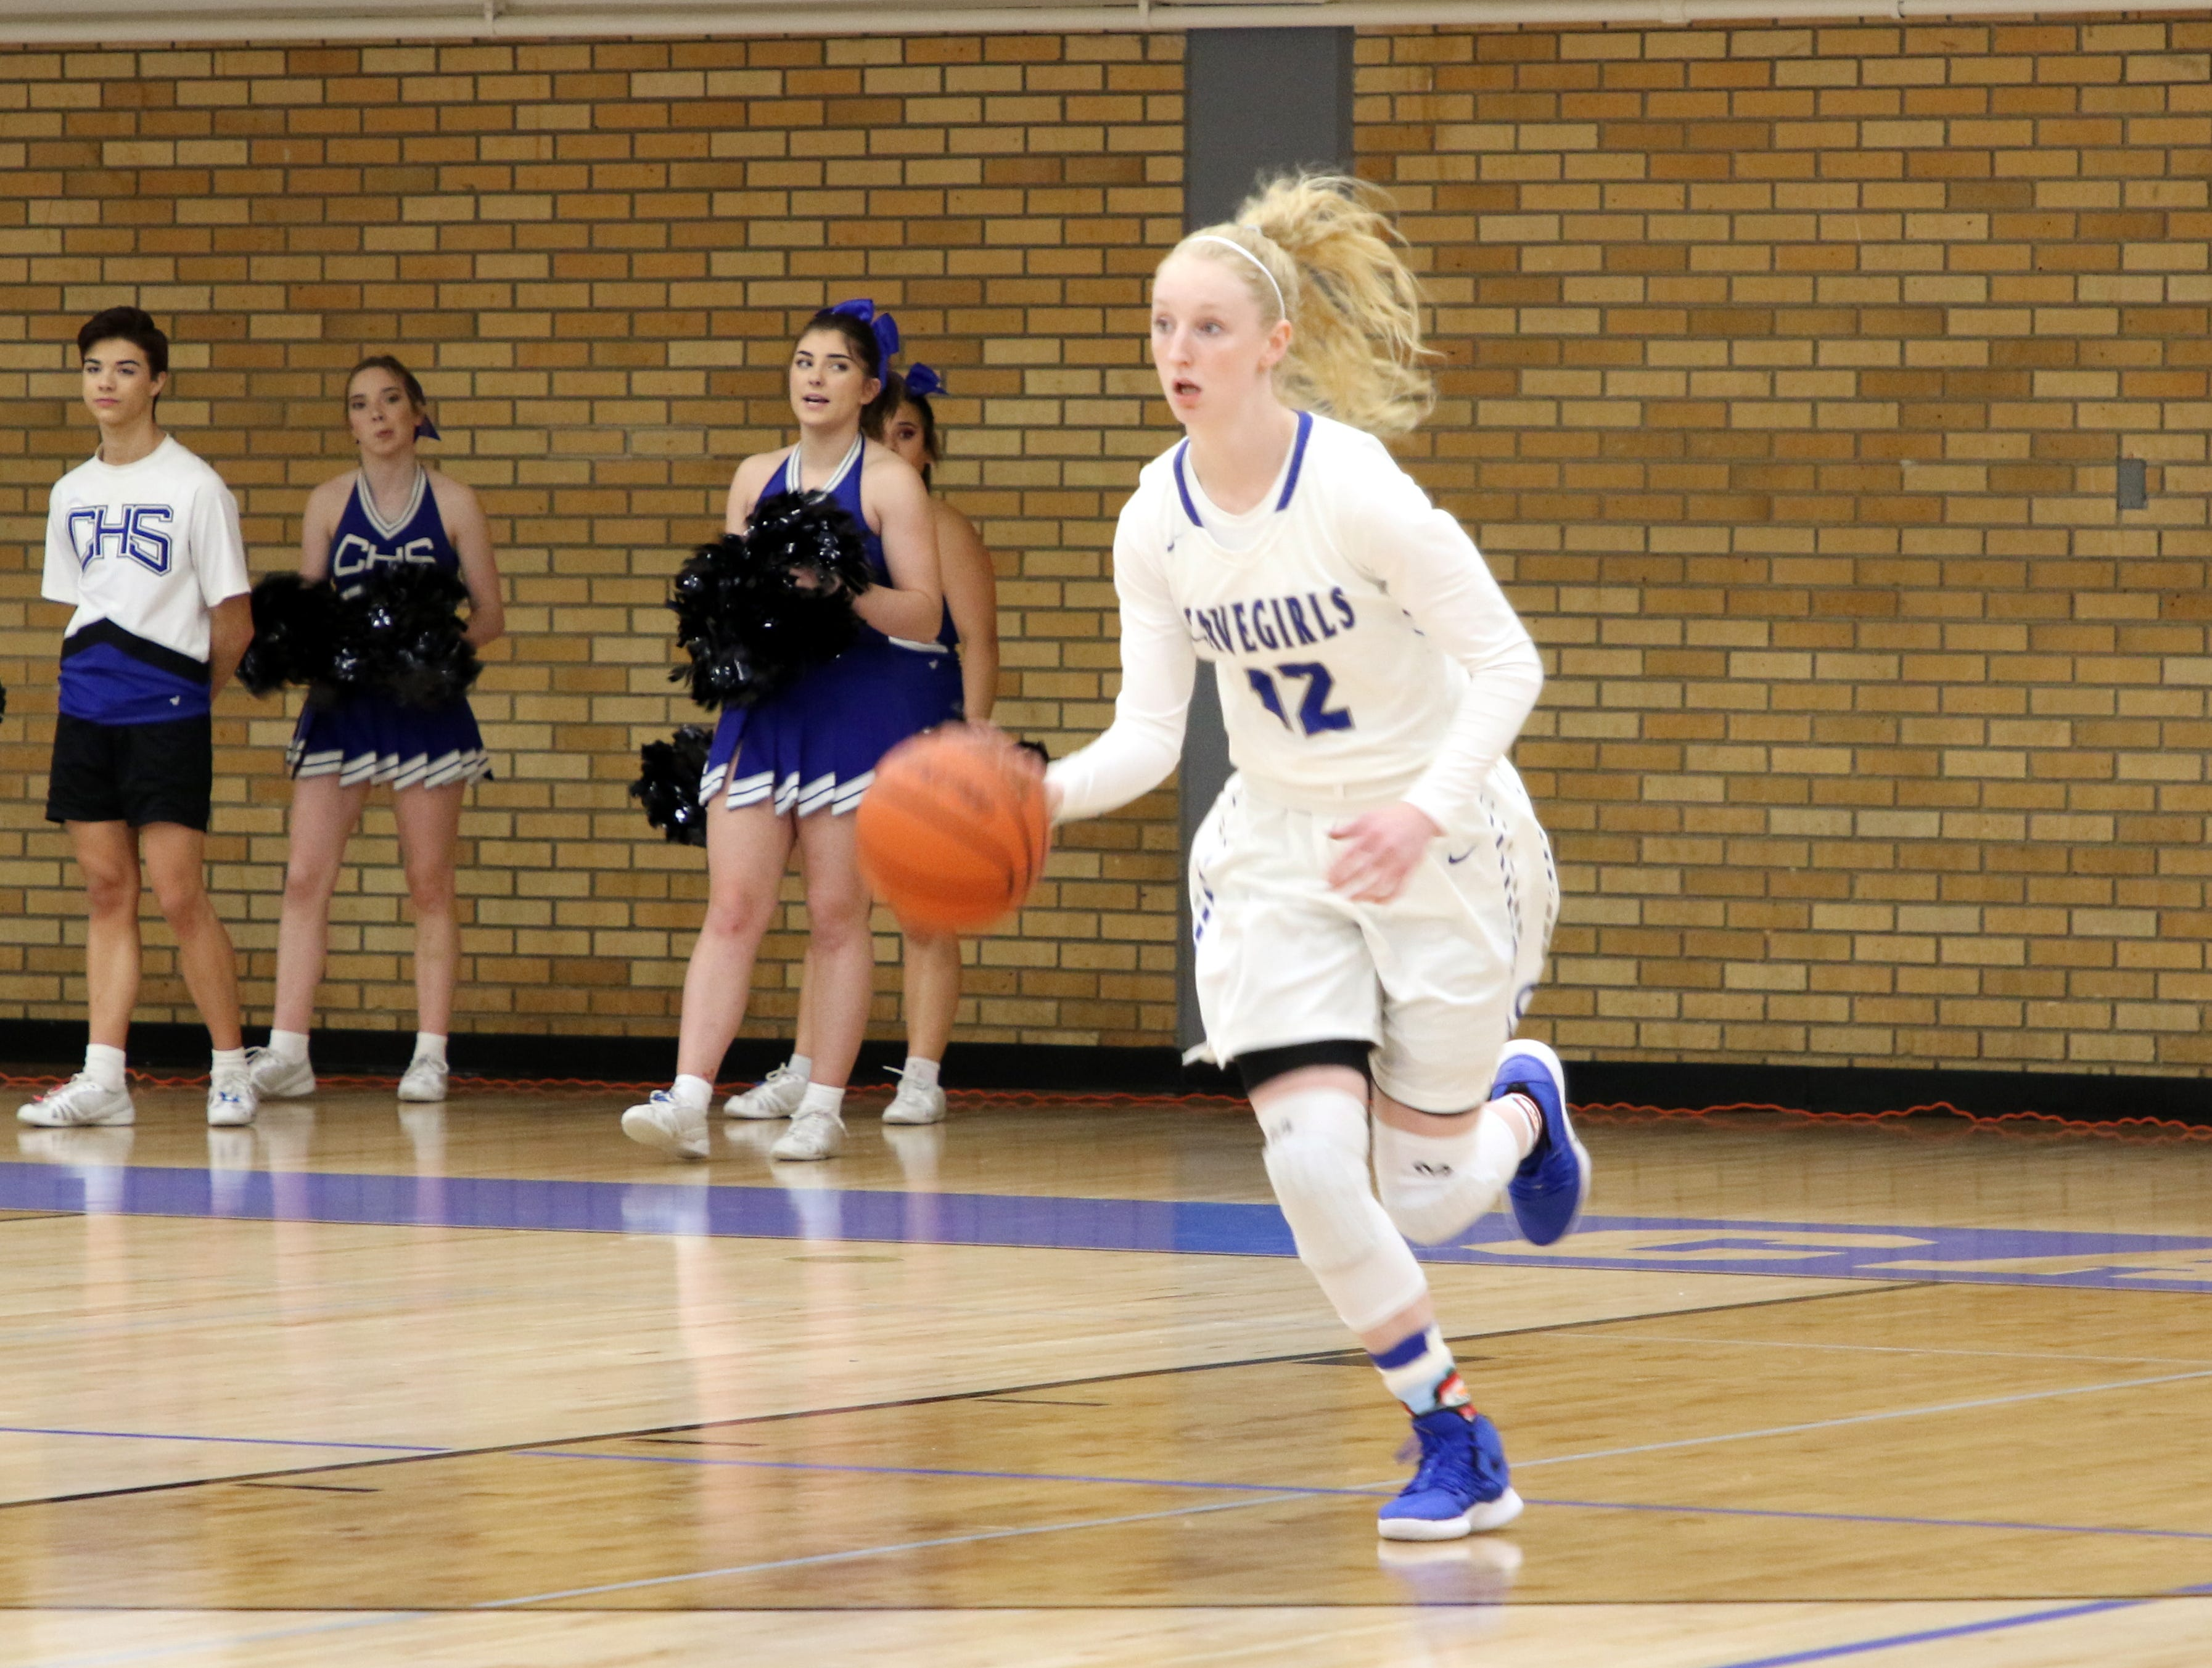 Carsyn Boswell takes the ball down the court against Mayfield. Boswell led all scorers with 15 points.